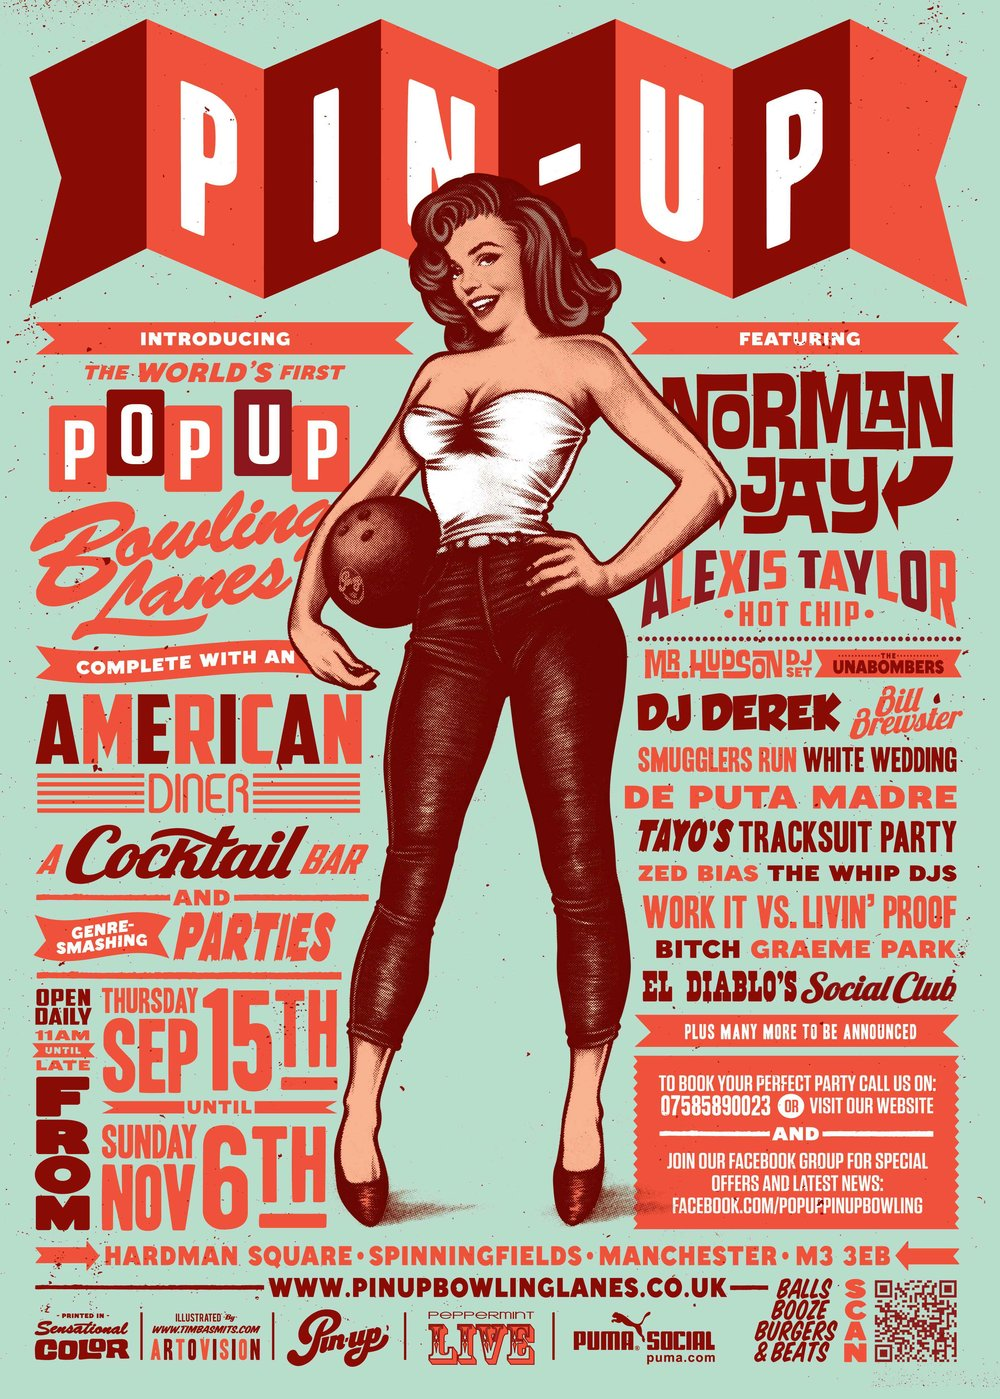 Award-winning illustrator, graphic designer and art director   Timba Smits   created the iconic Pin-up brand and aesthetic.